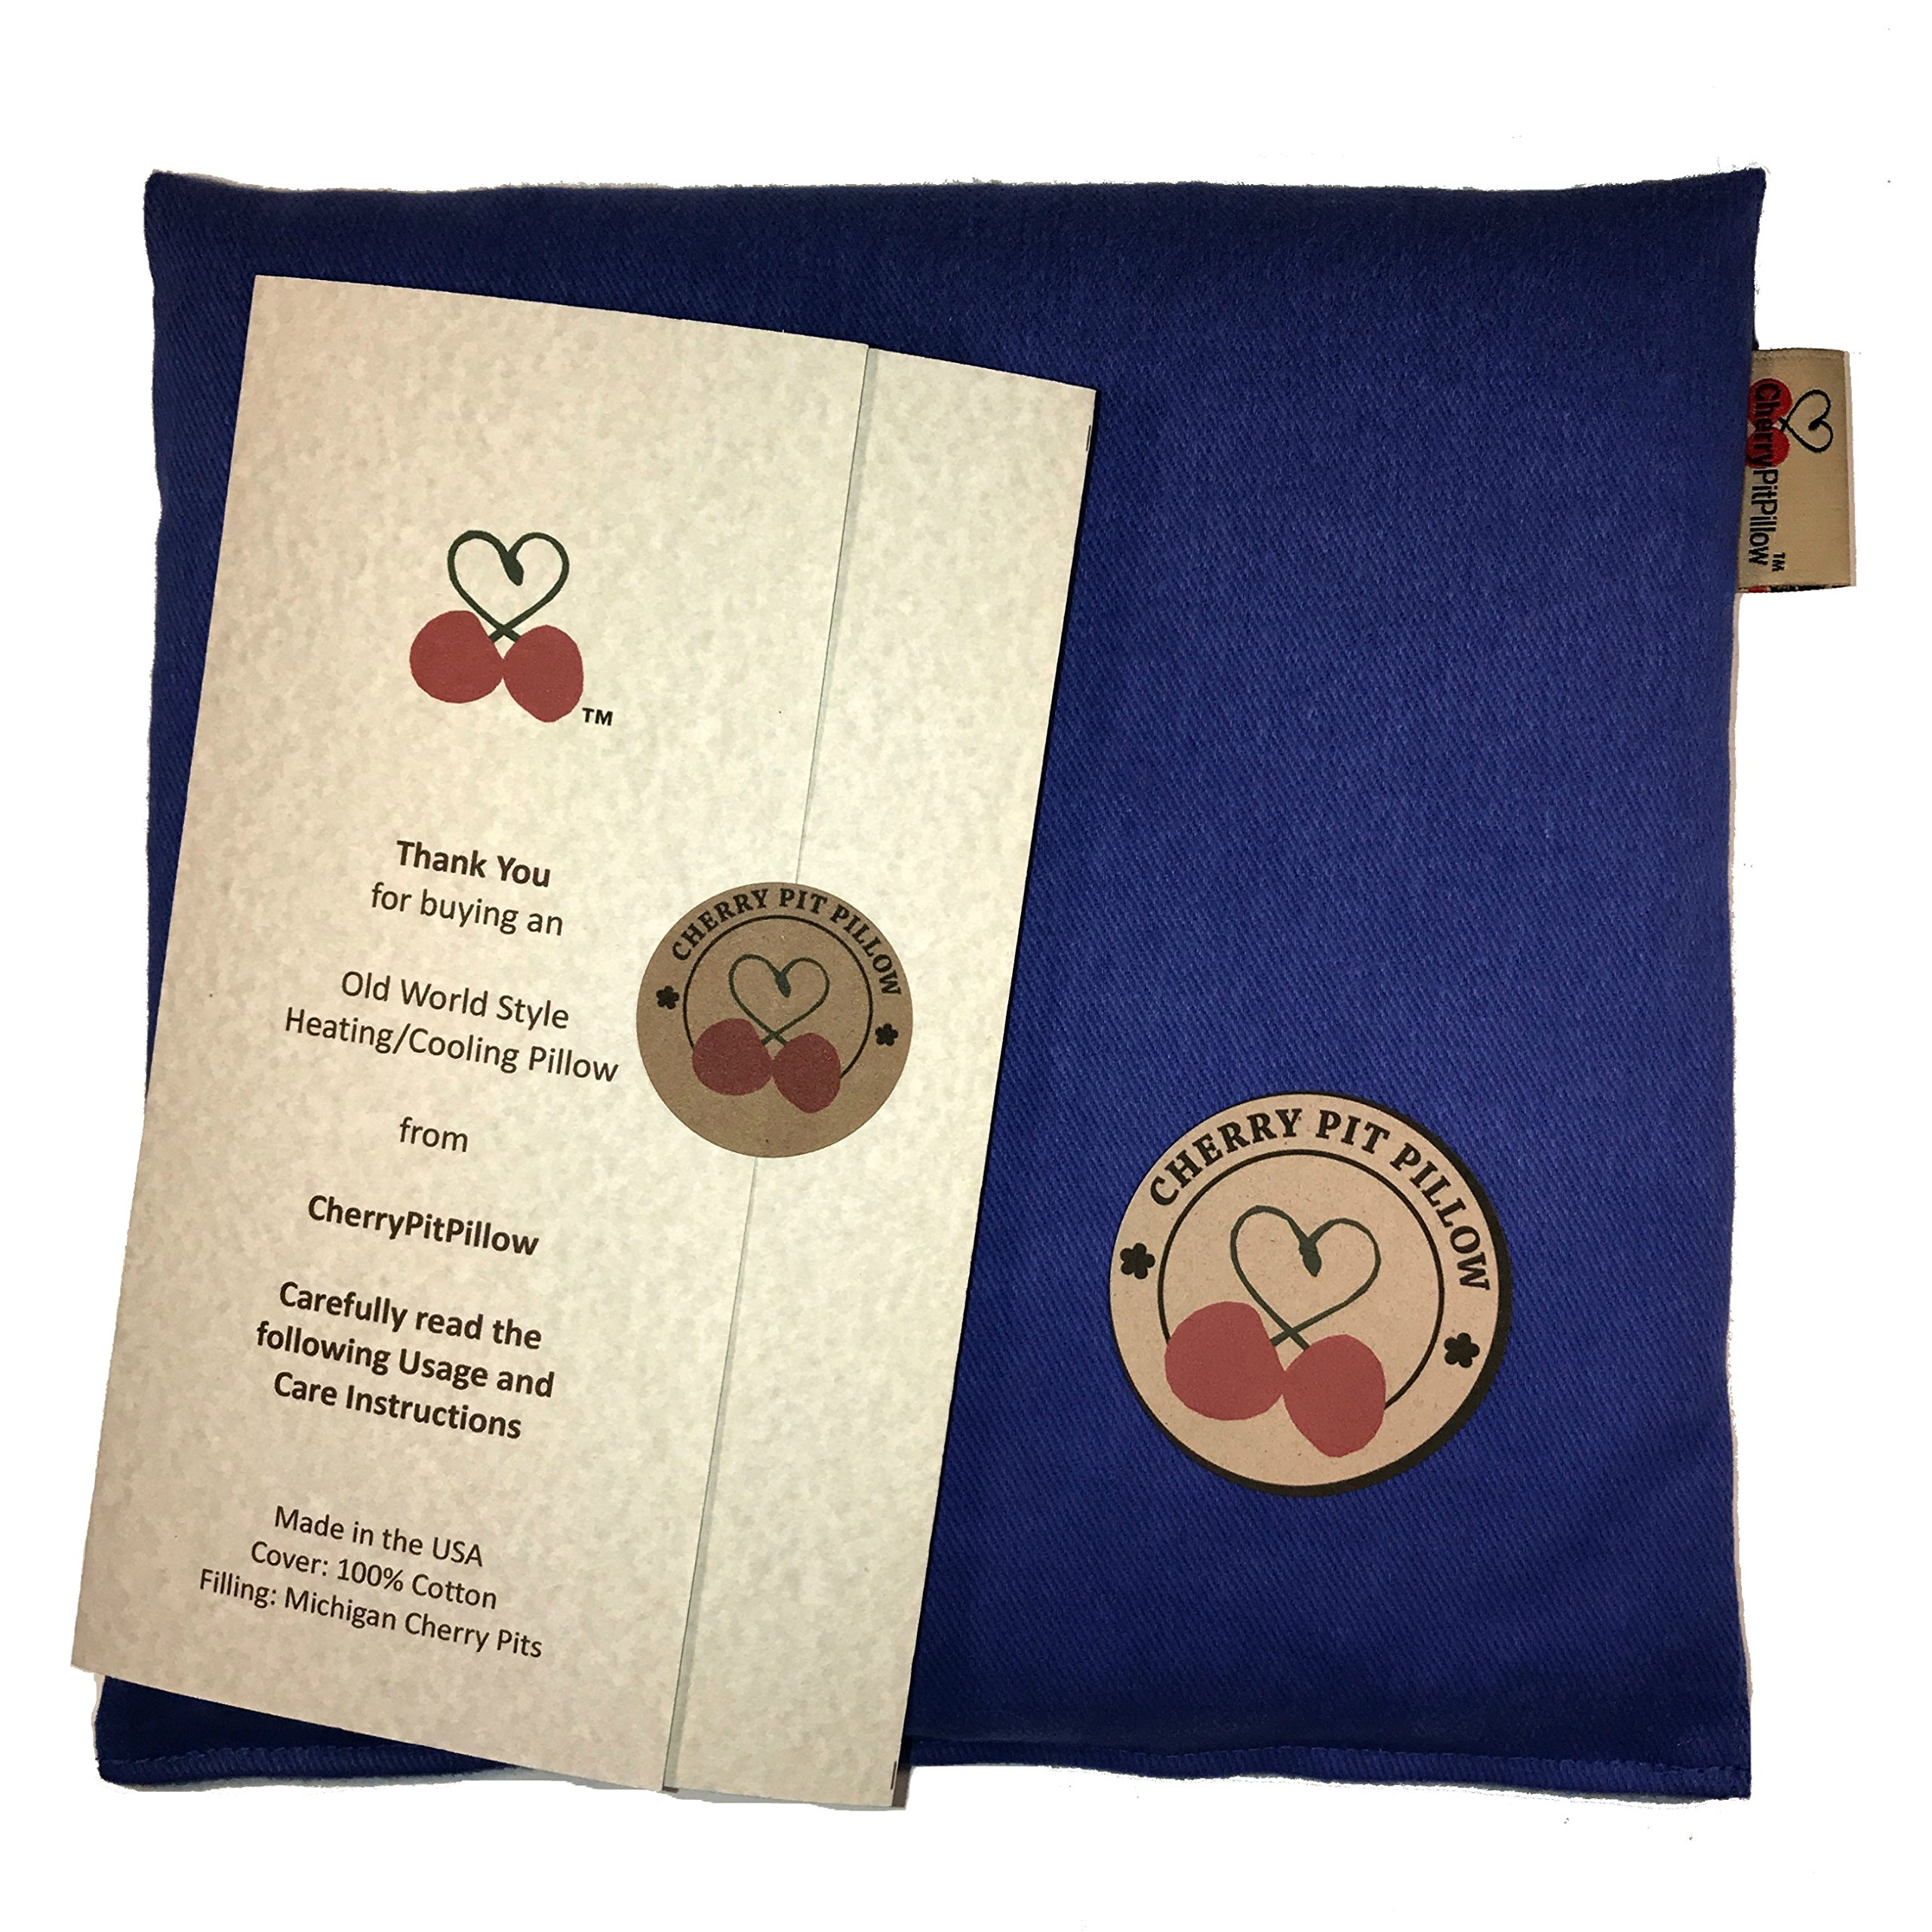 Old World Style Cherry Pit Pillow in Ocean Blue - for Neck, Muscle, Joint, Stomach Pain, Menstrual Cramp Relief - Soft 100% Cotton - Microwavable Natural Cherry Stone Seed Heat Pack Pad - Made in USA by KOYA Naturals